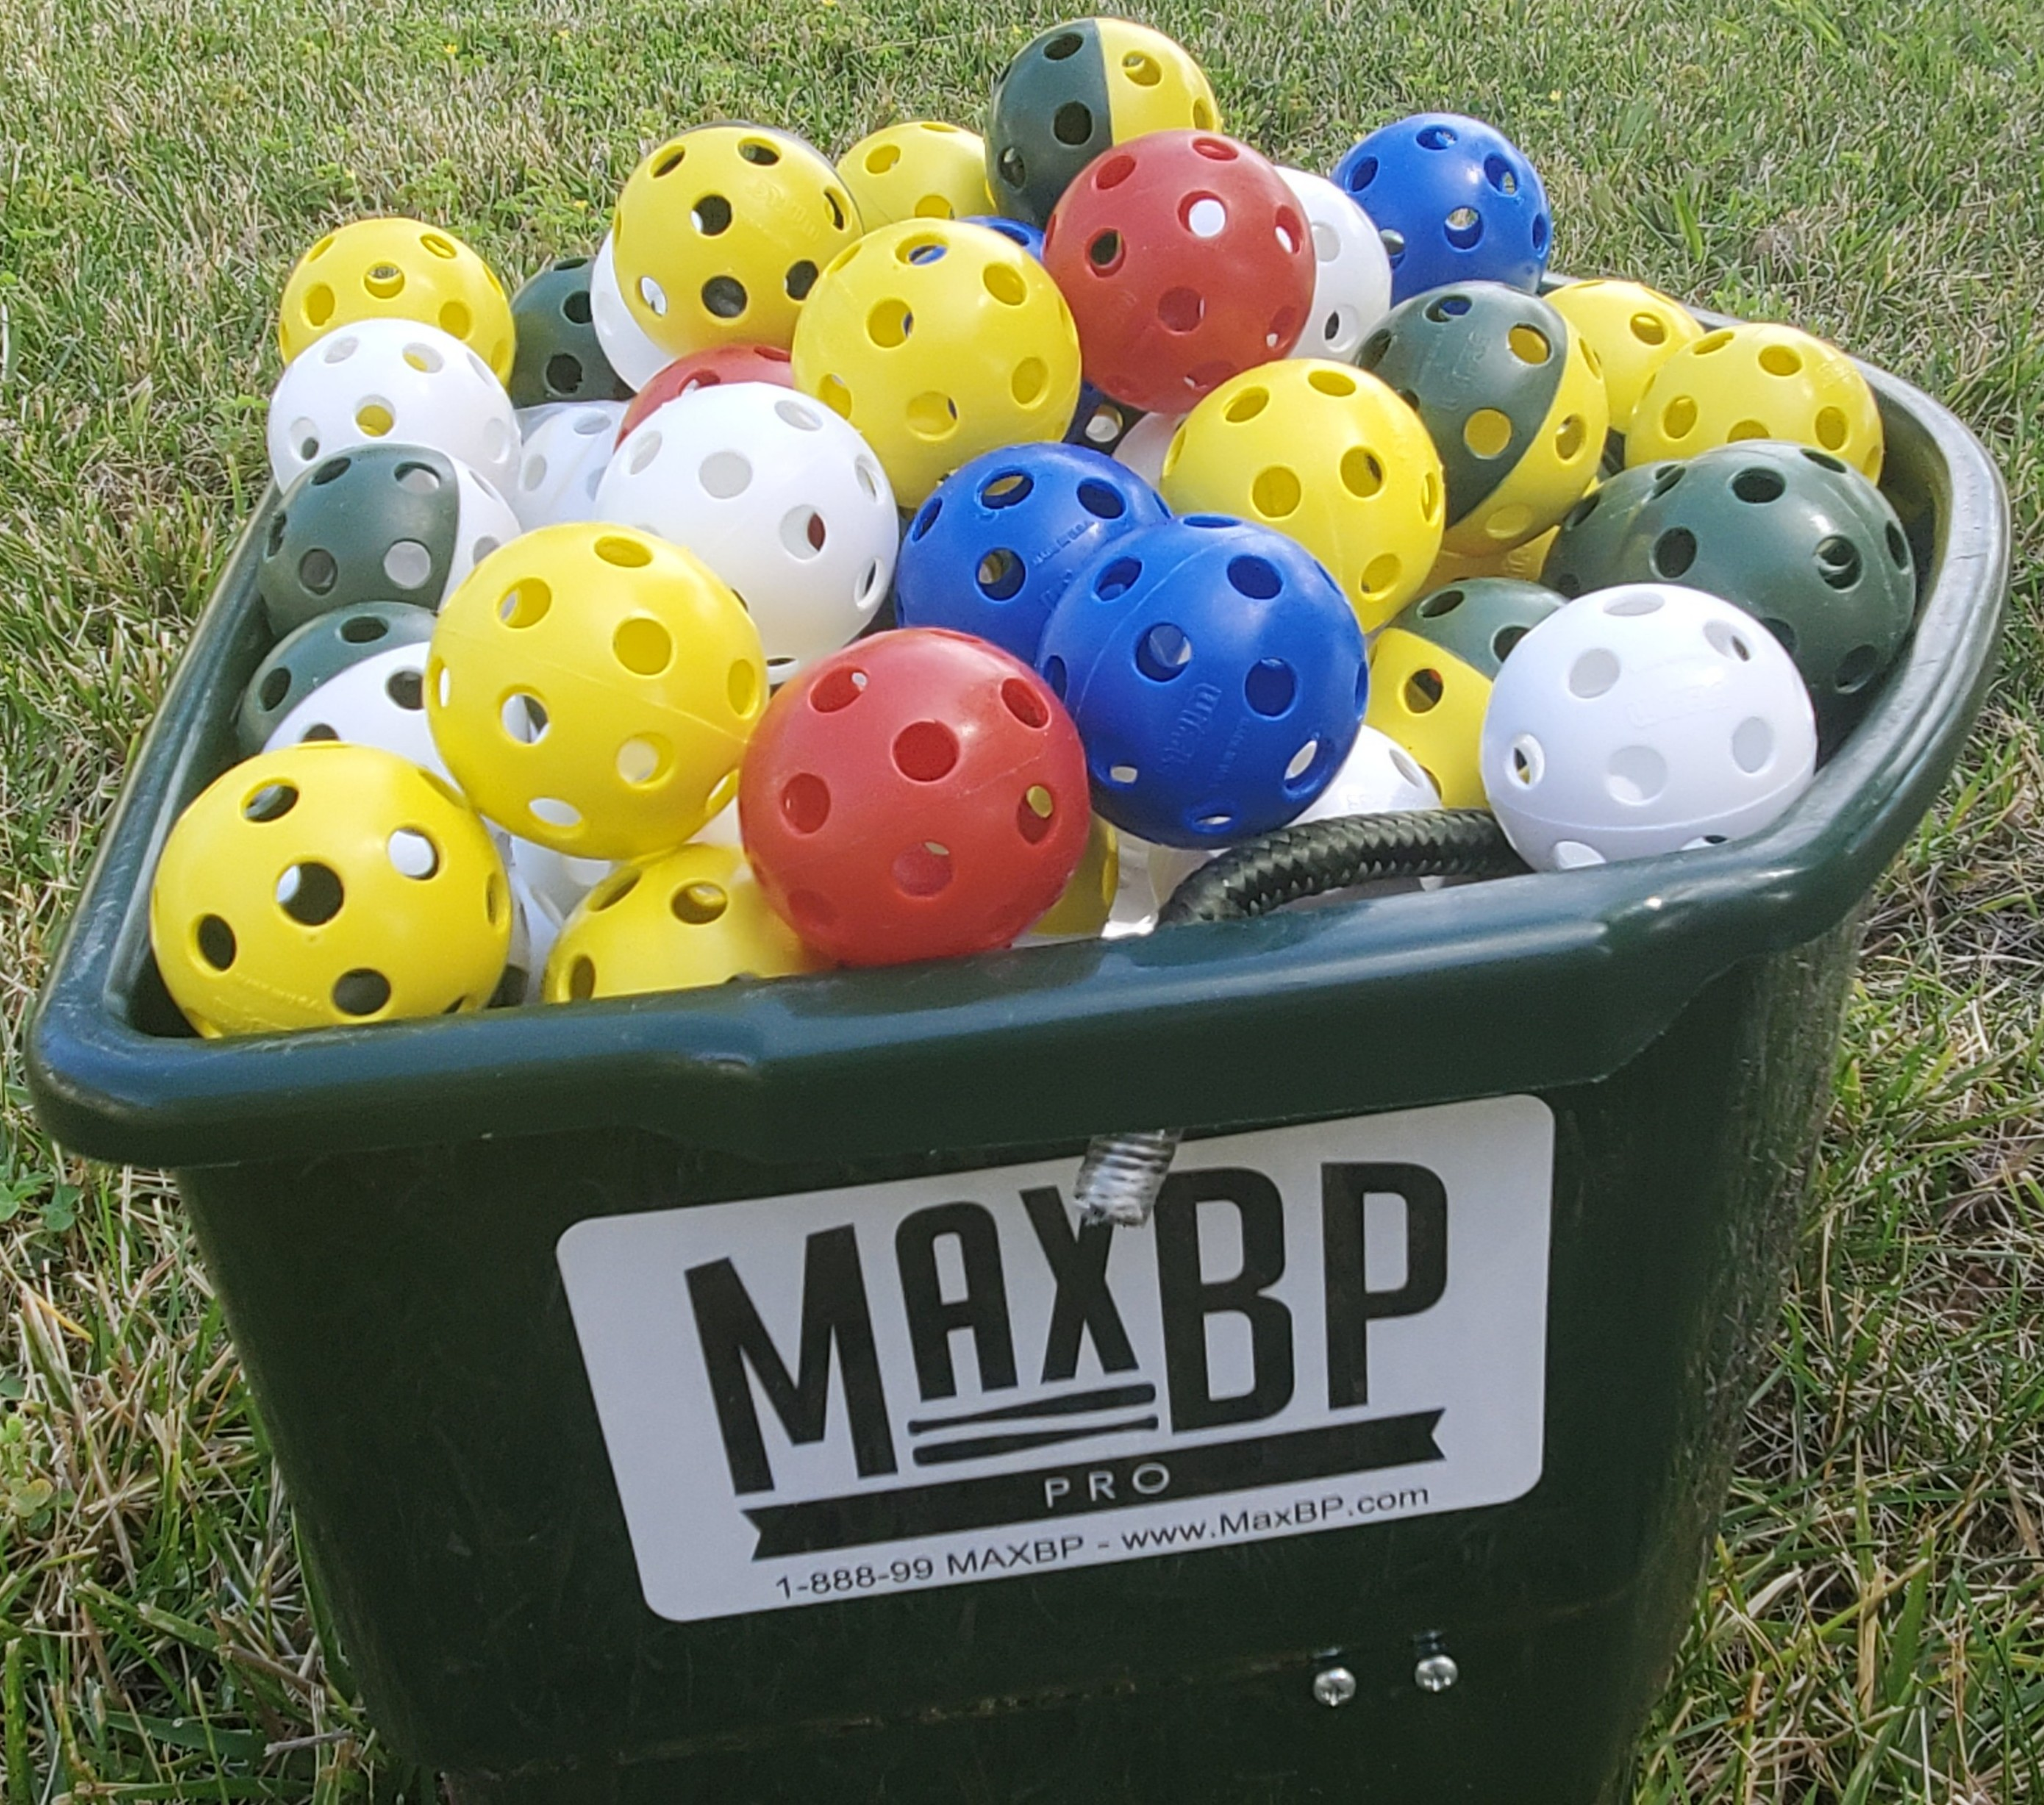 MaxBP has jelly bean wiffle balls that will any hitter in training develop better vision and hand-eye coordination in the batter's box.